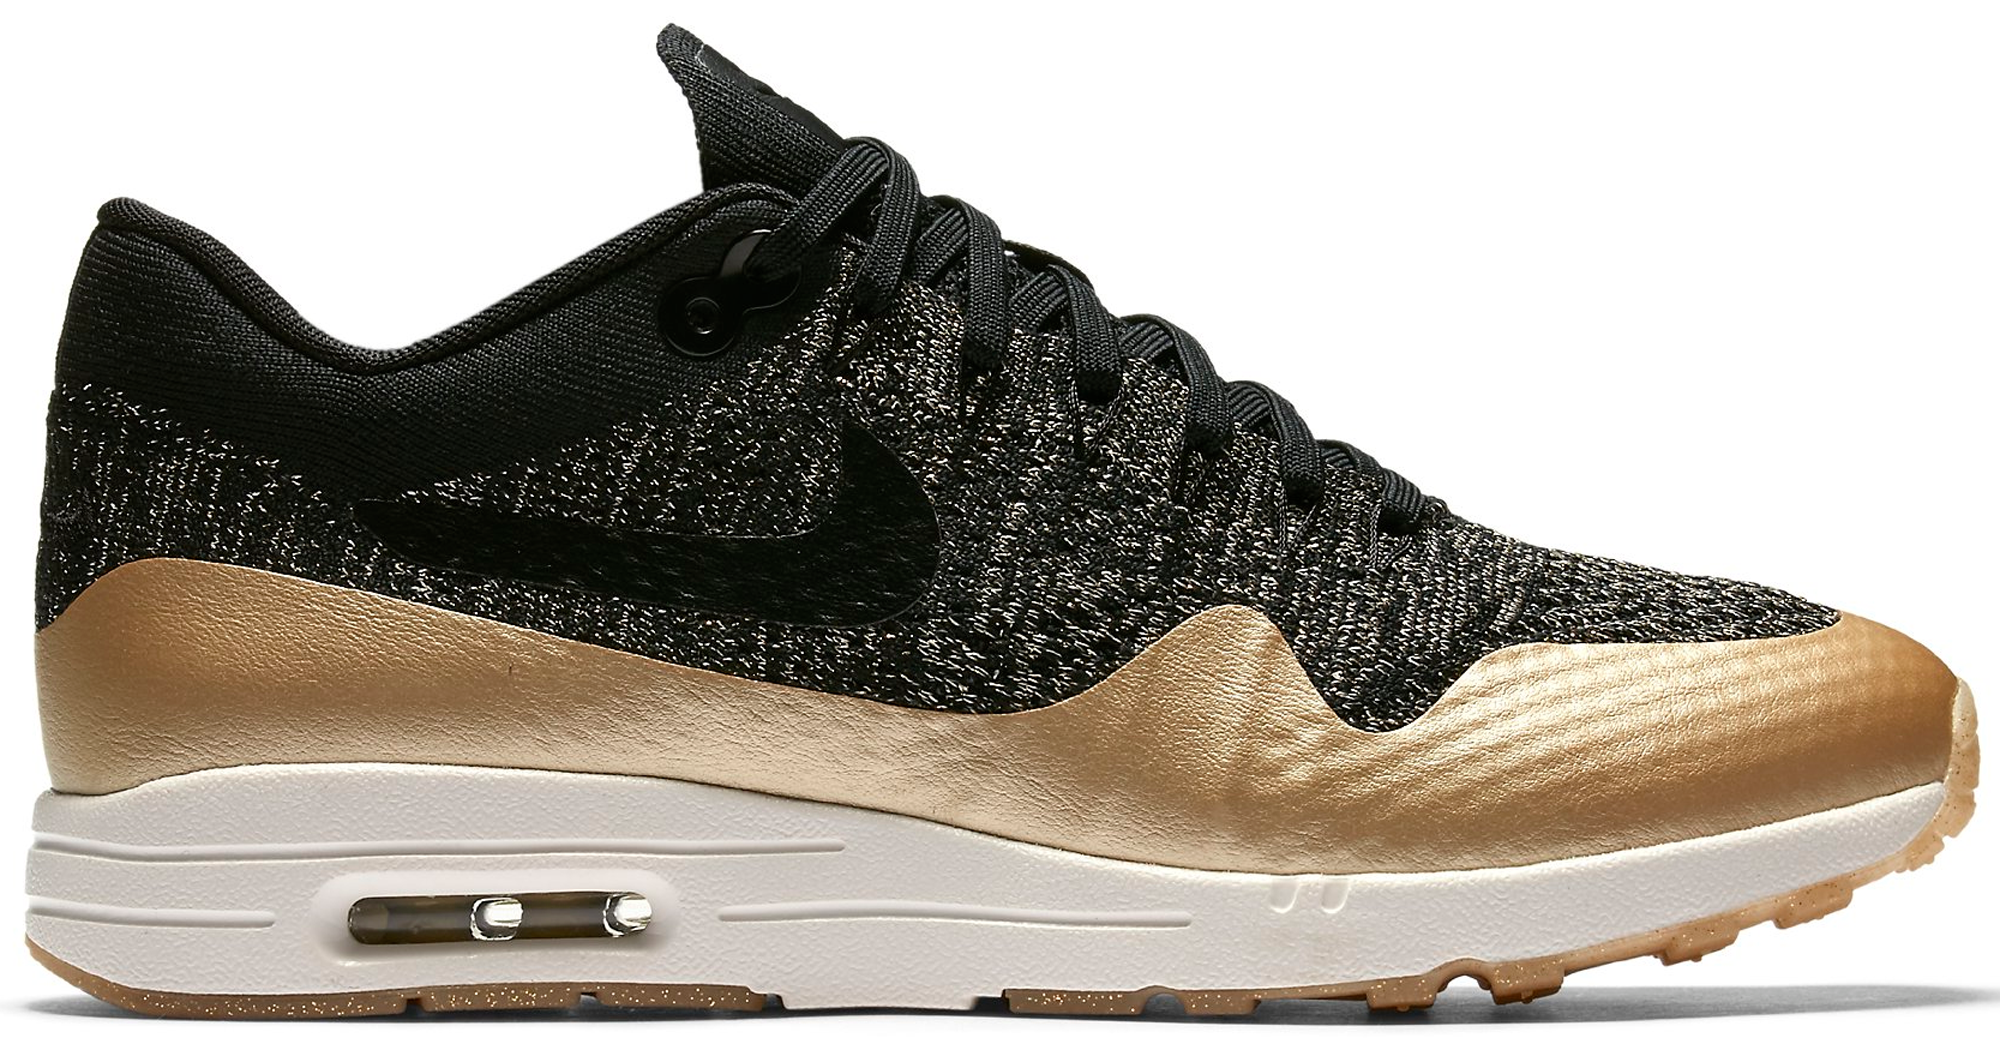 Max Gold Air News 2 Metallic w Flyknit Stockx Ultra 1 Nike 0 p45cWwqq1